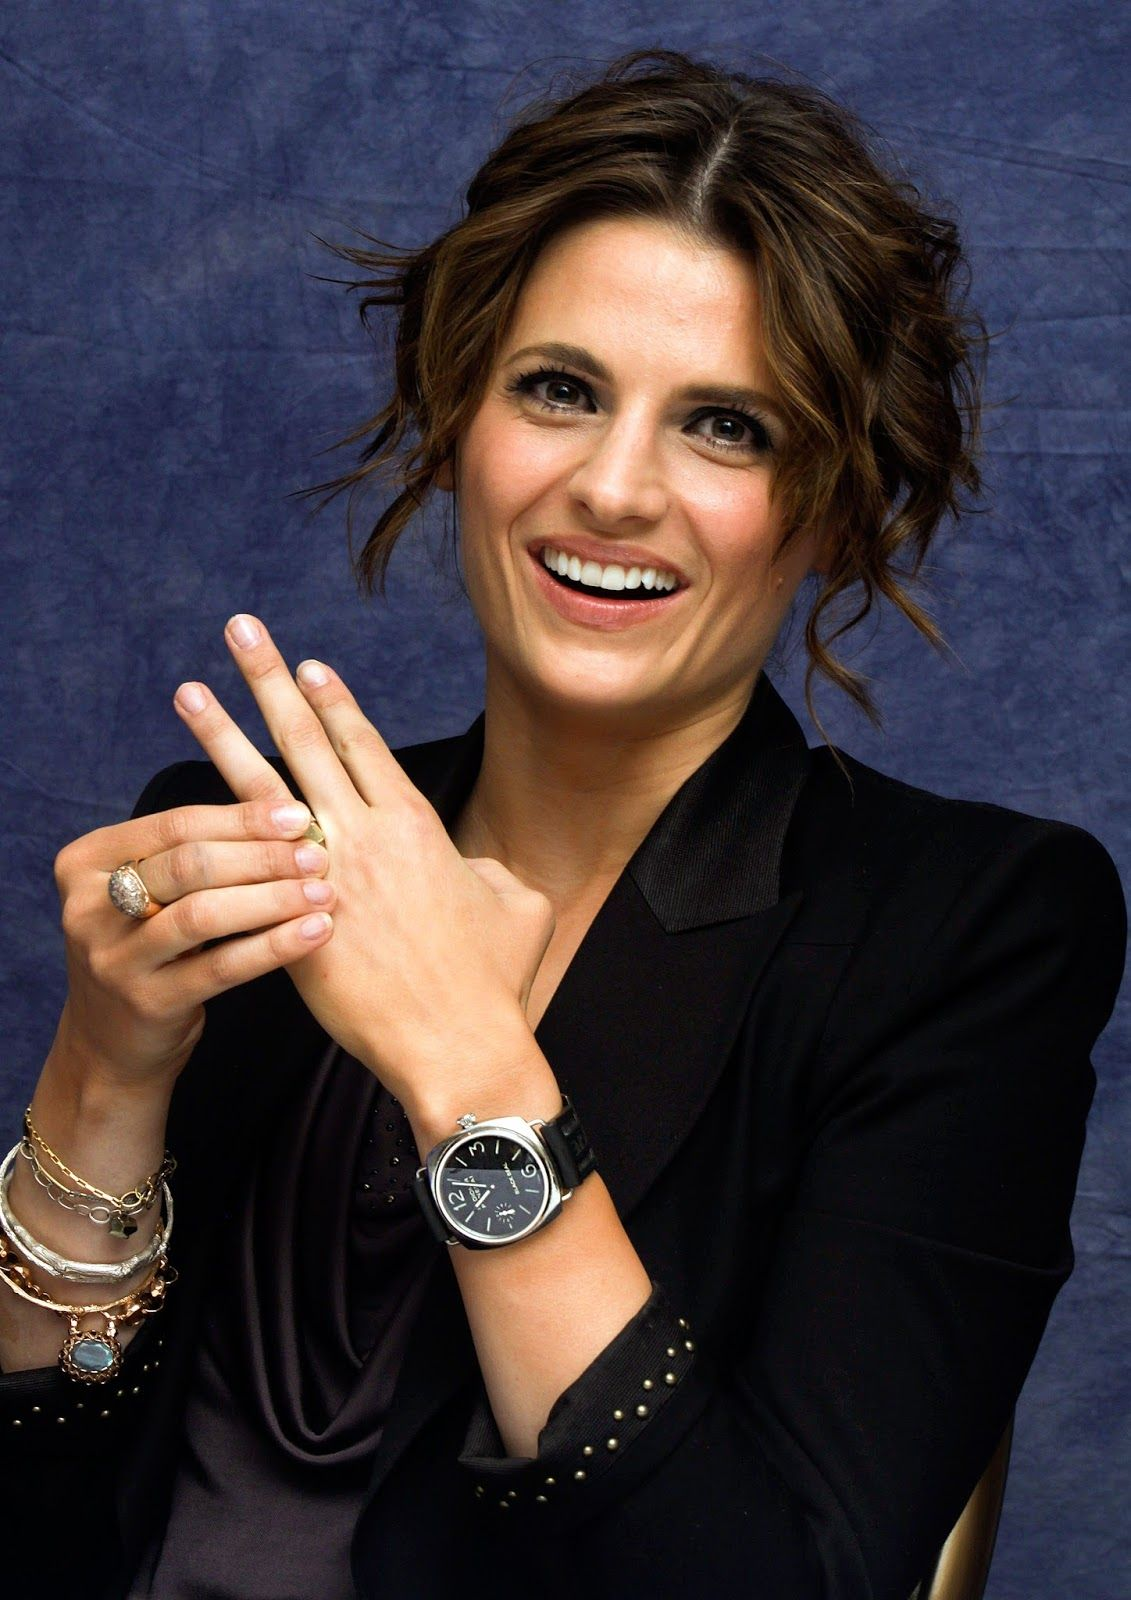 Celebrities and Their Favorite Watches